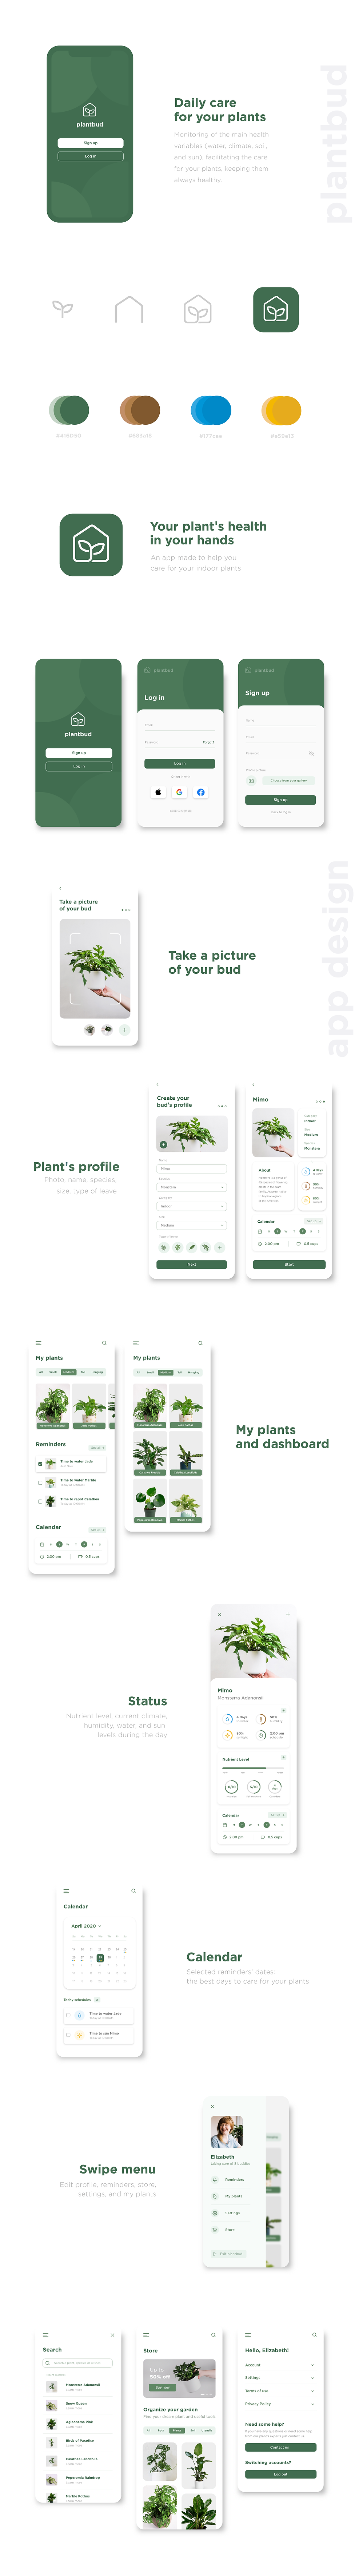 planthome-full-behance-01.png